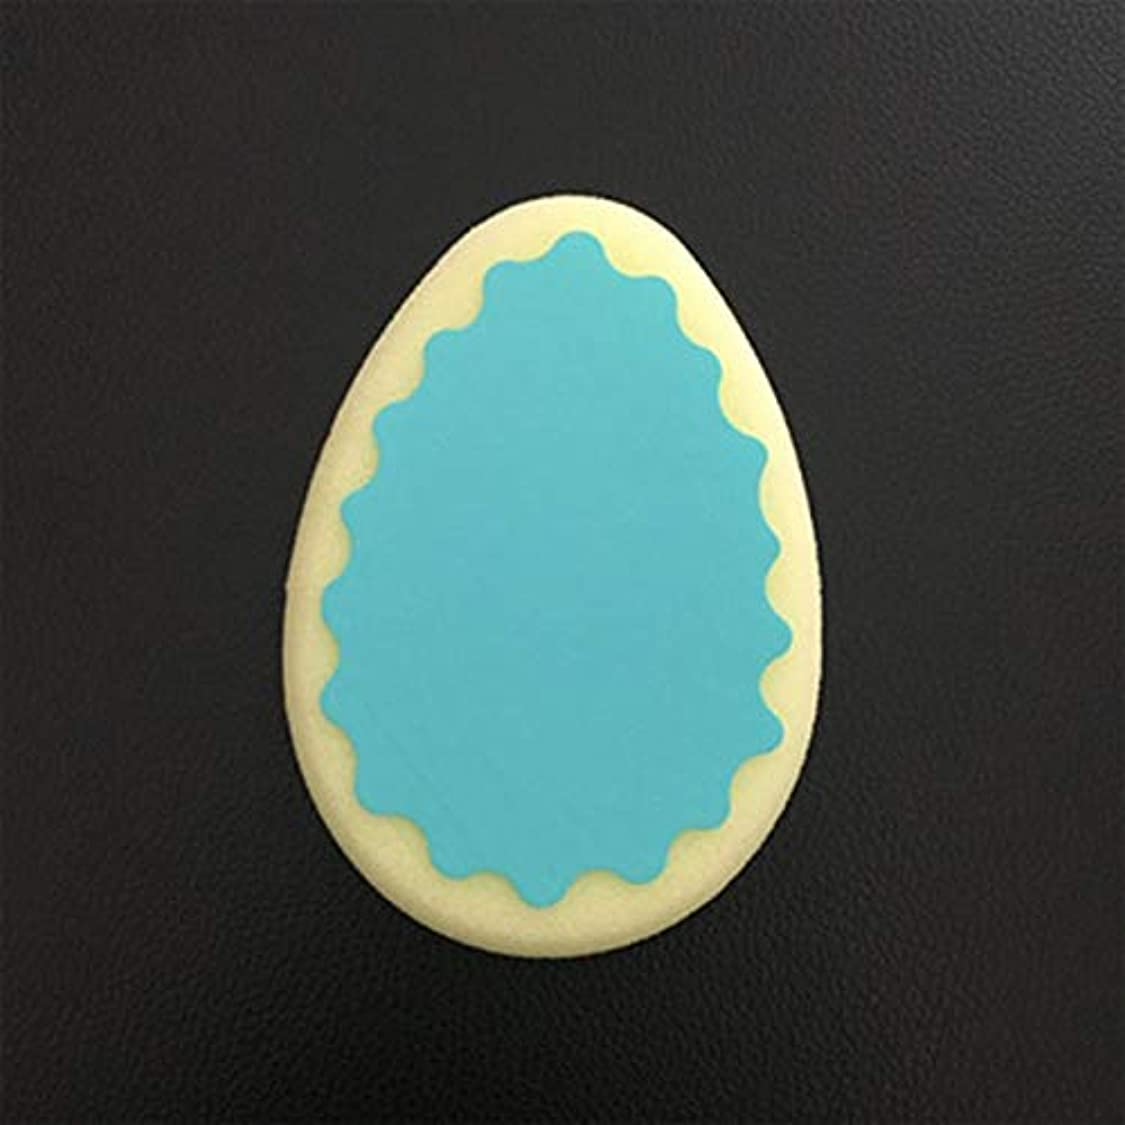 プライム商人指定Magic Painless Hair Removal Depilation Sponge Pad Remove Hair Remover Sponge